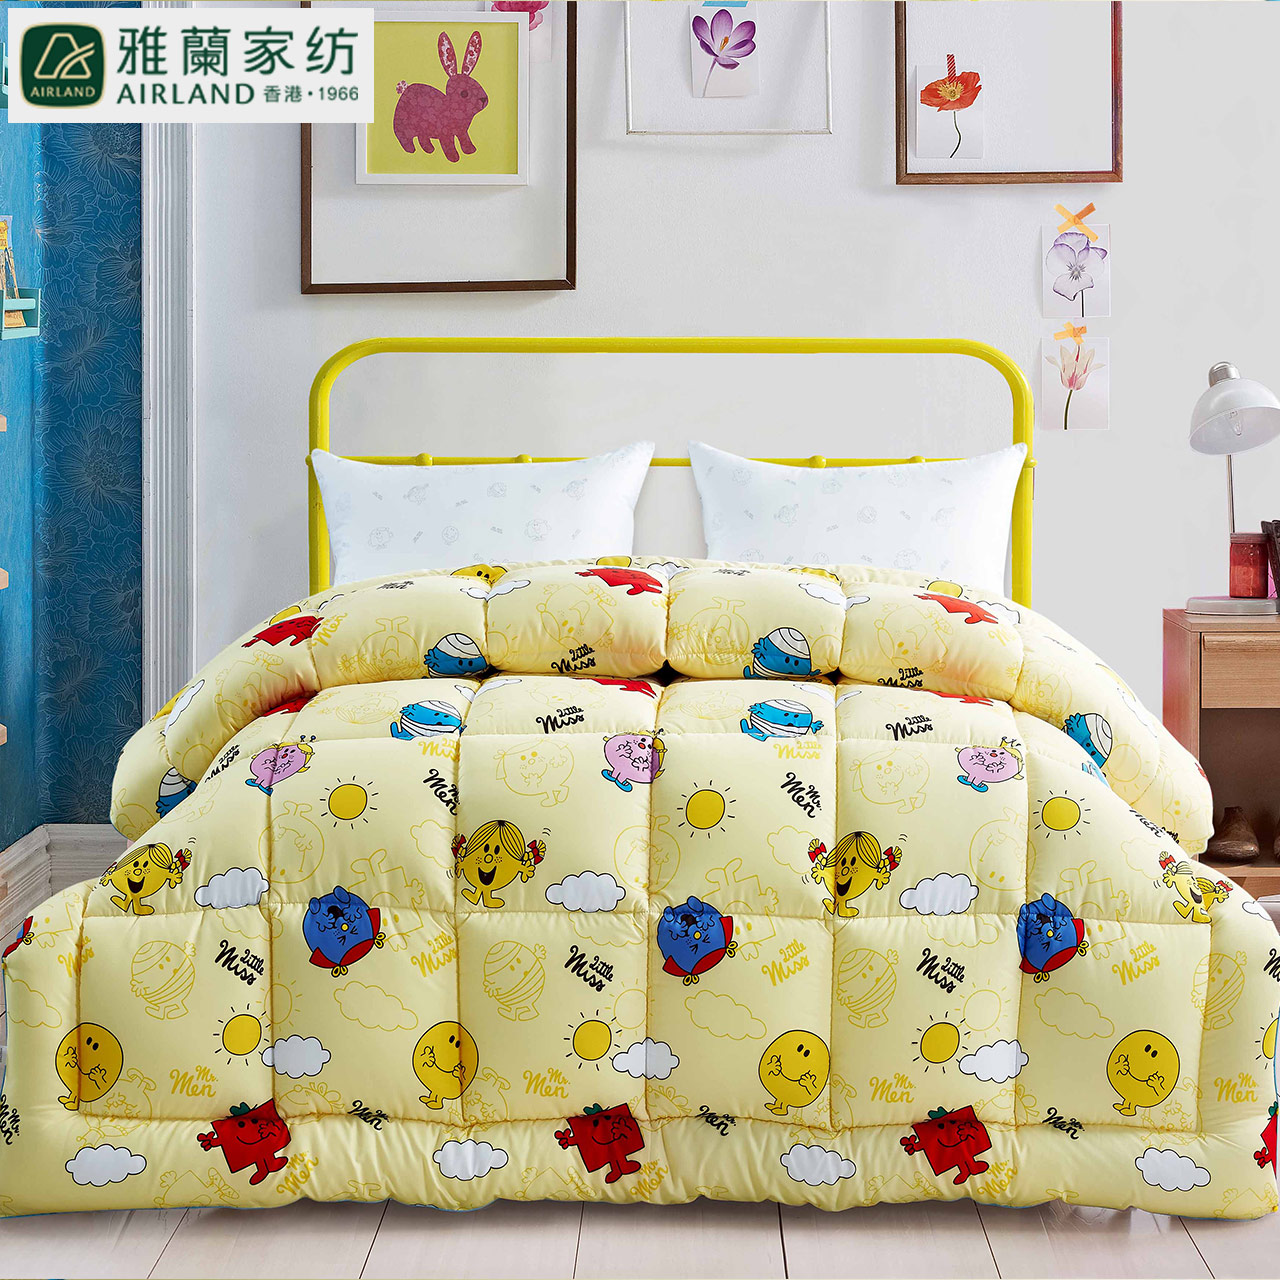 Arran textile english genuine o2o mr. men thick warm winter quilt is the core fibers are autumn and winter